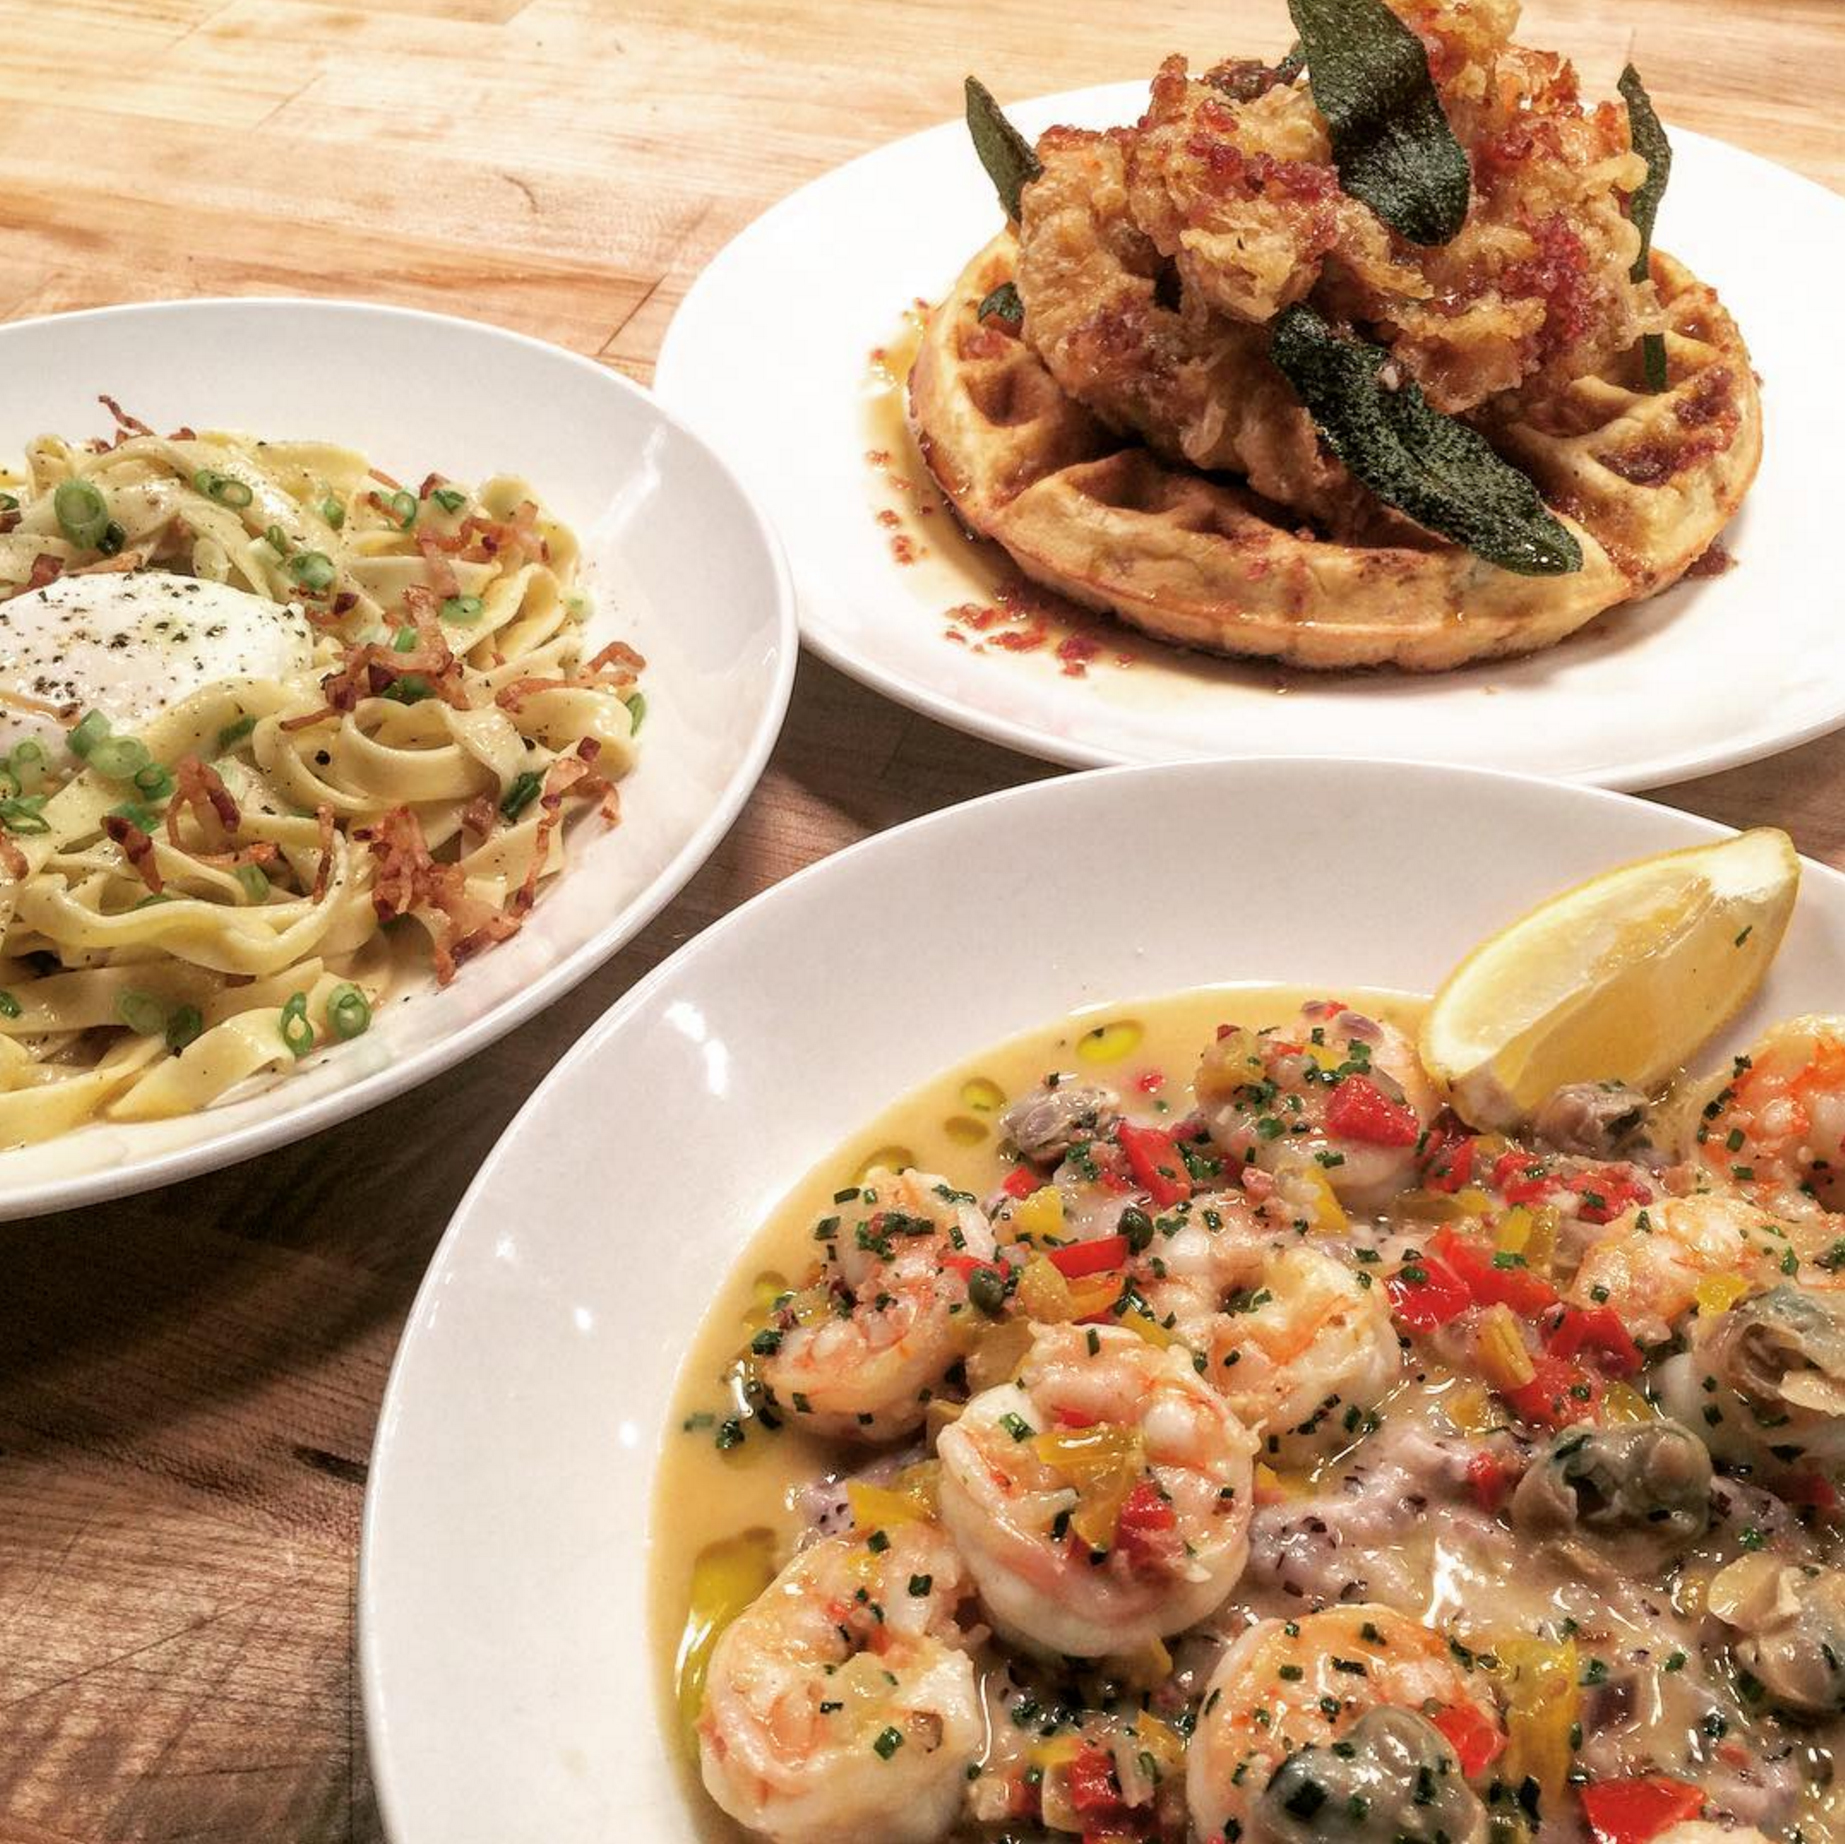 Le Farfalle Brings Tuscan-Fried Chicken and Waffles to the Brunch Table